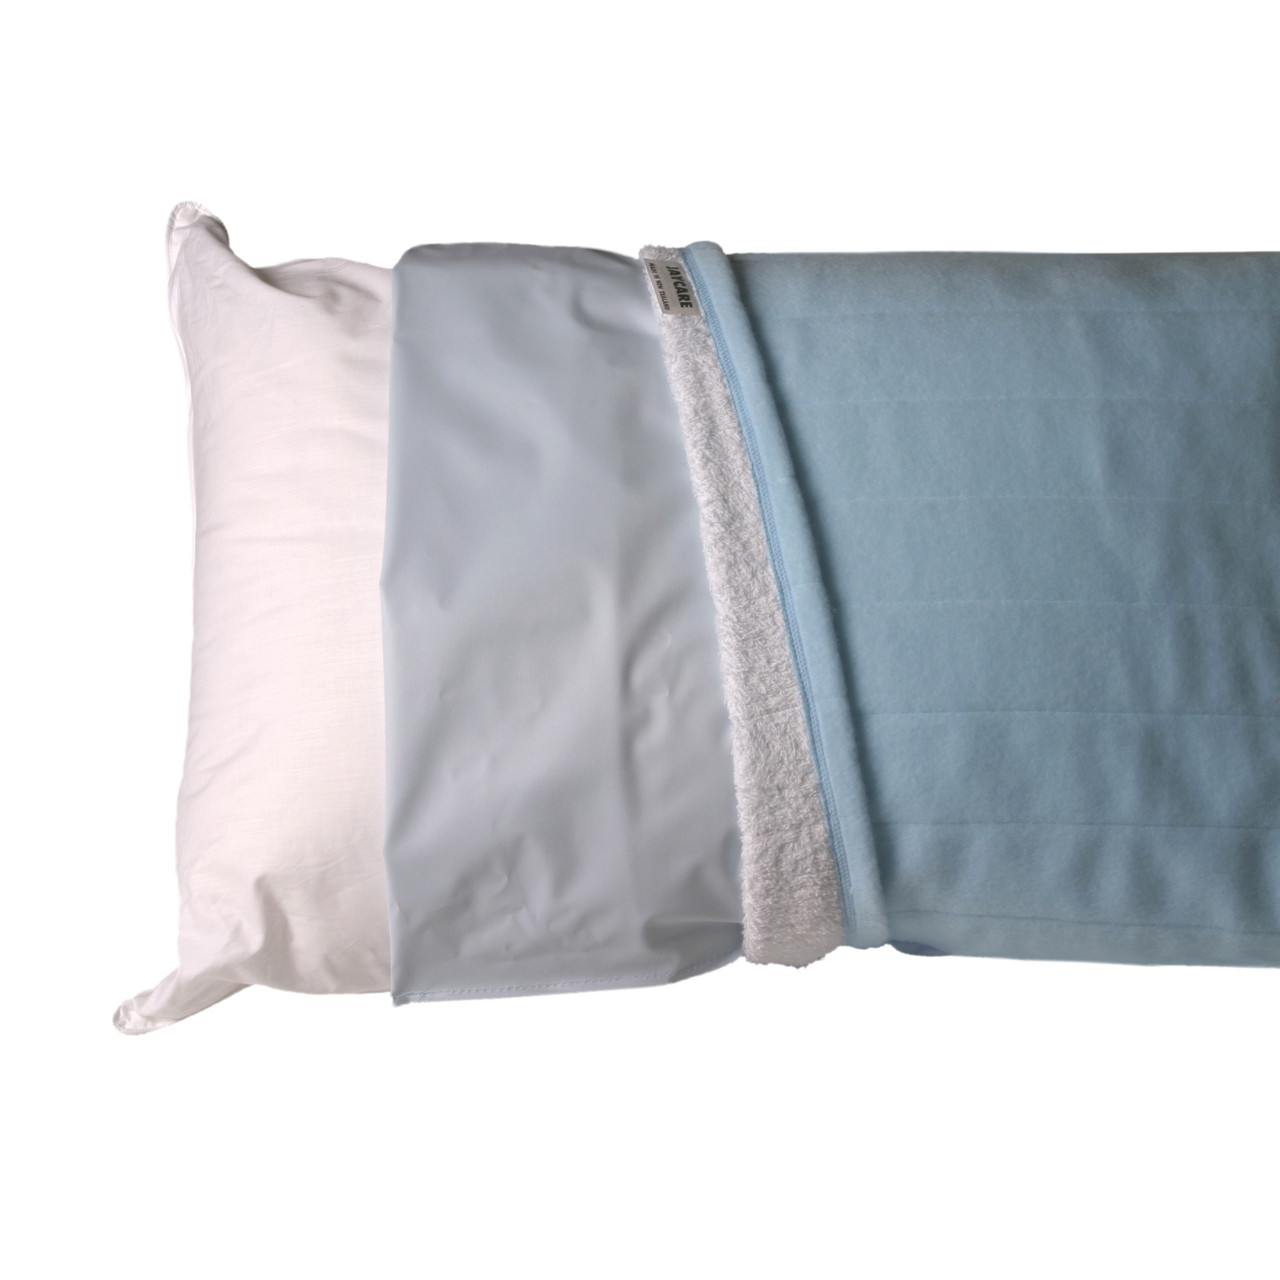 Pillow made up with Jaycare Water Proof and Adsorbent Pillow Covers